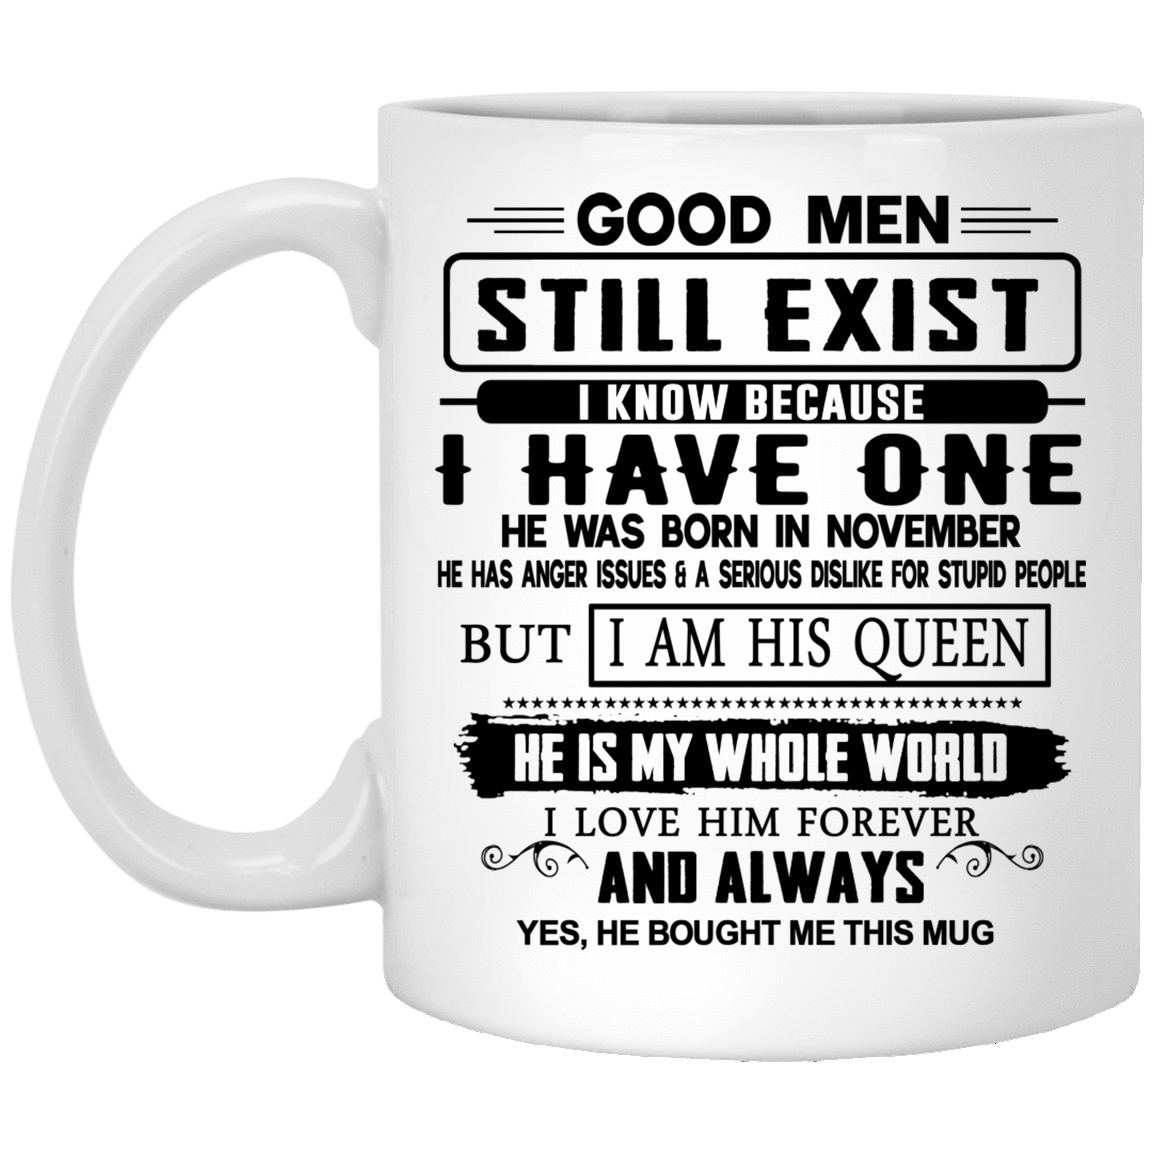 Good Men Still Exist I Have One He Was Born In November Mug 1005-9786-76399496-47417 - Tee Ript